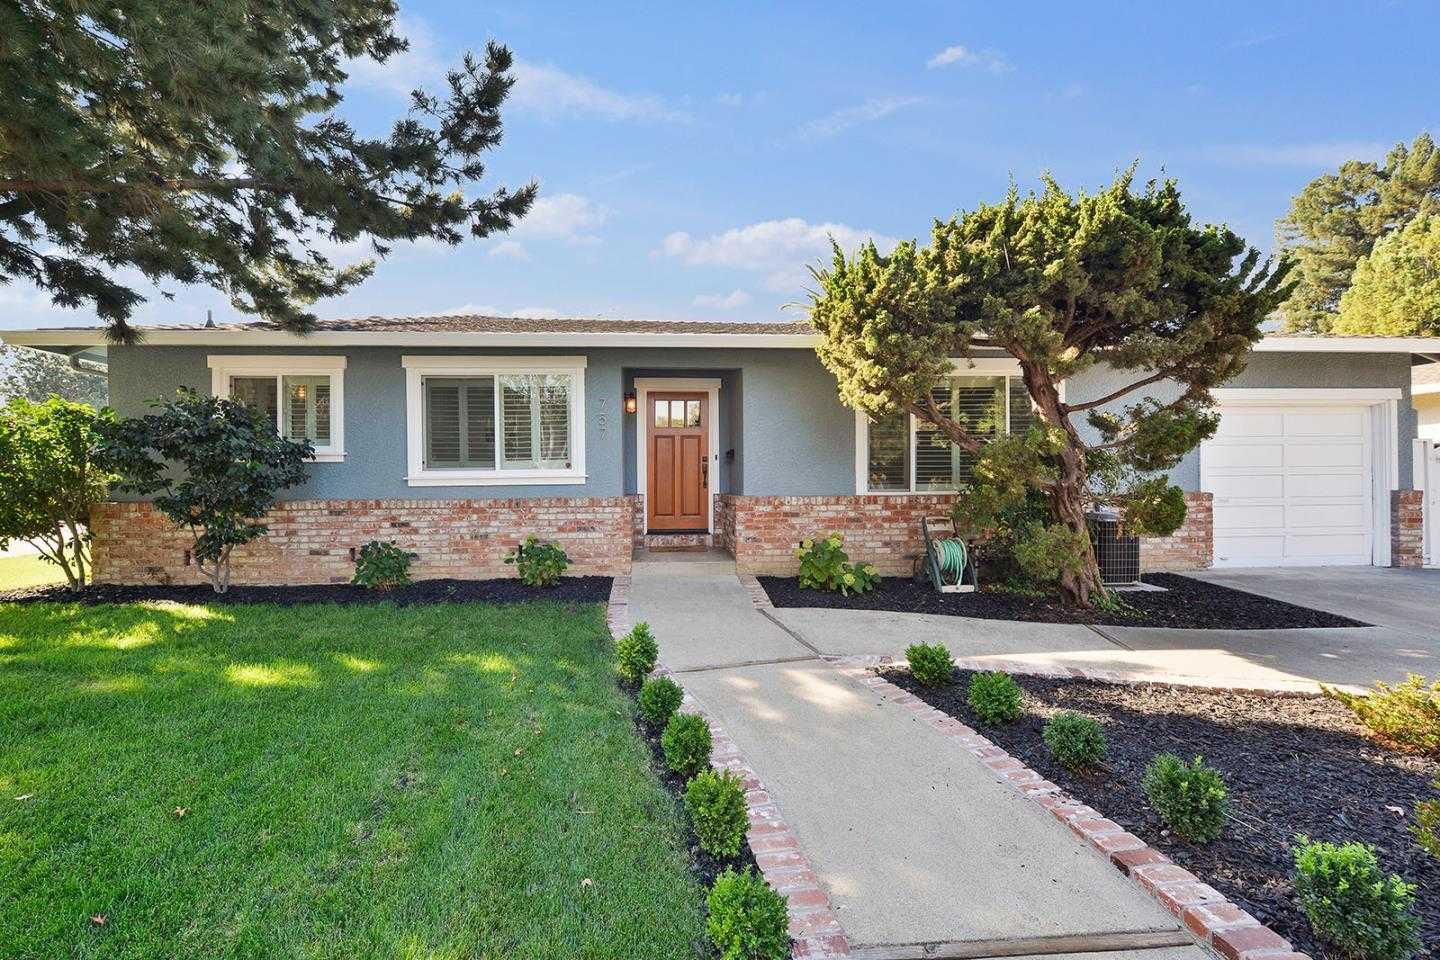 $1,088,000 - 2Br/2Ba -  for Sale in Mountain View